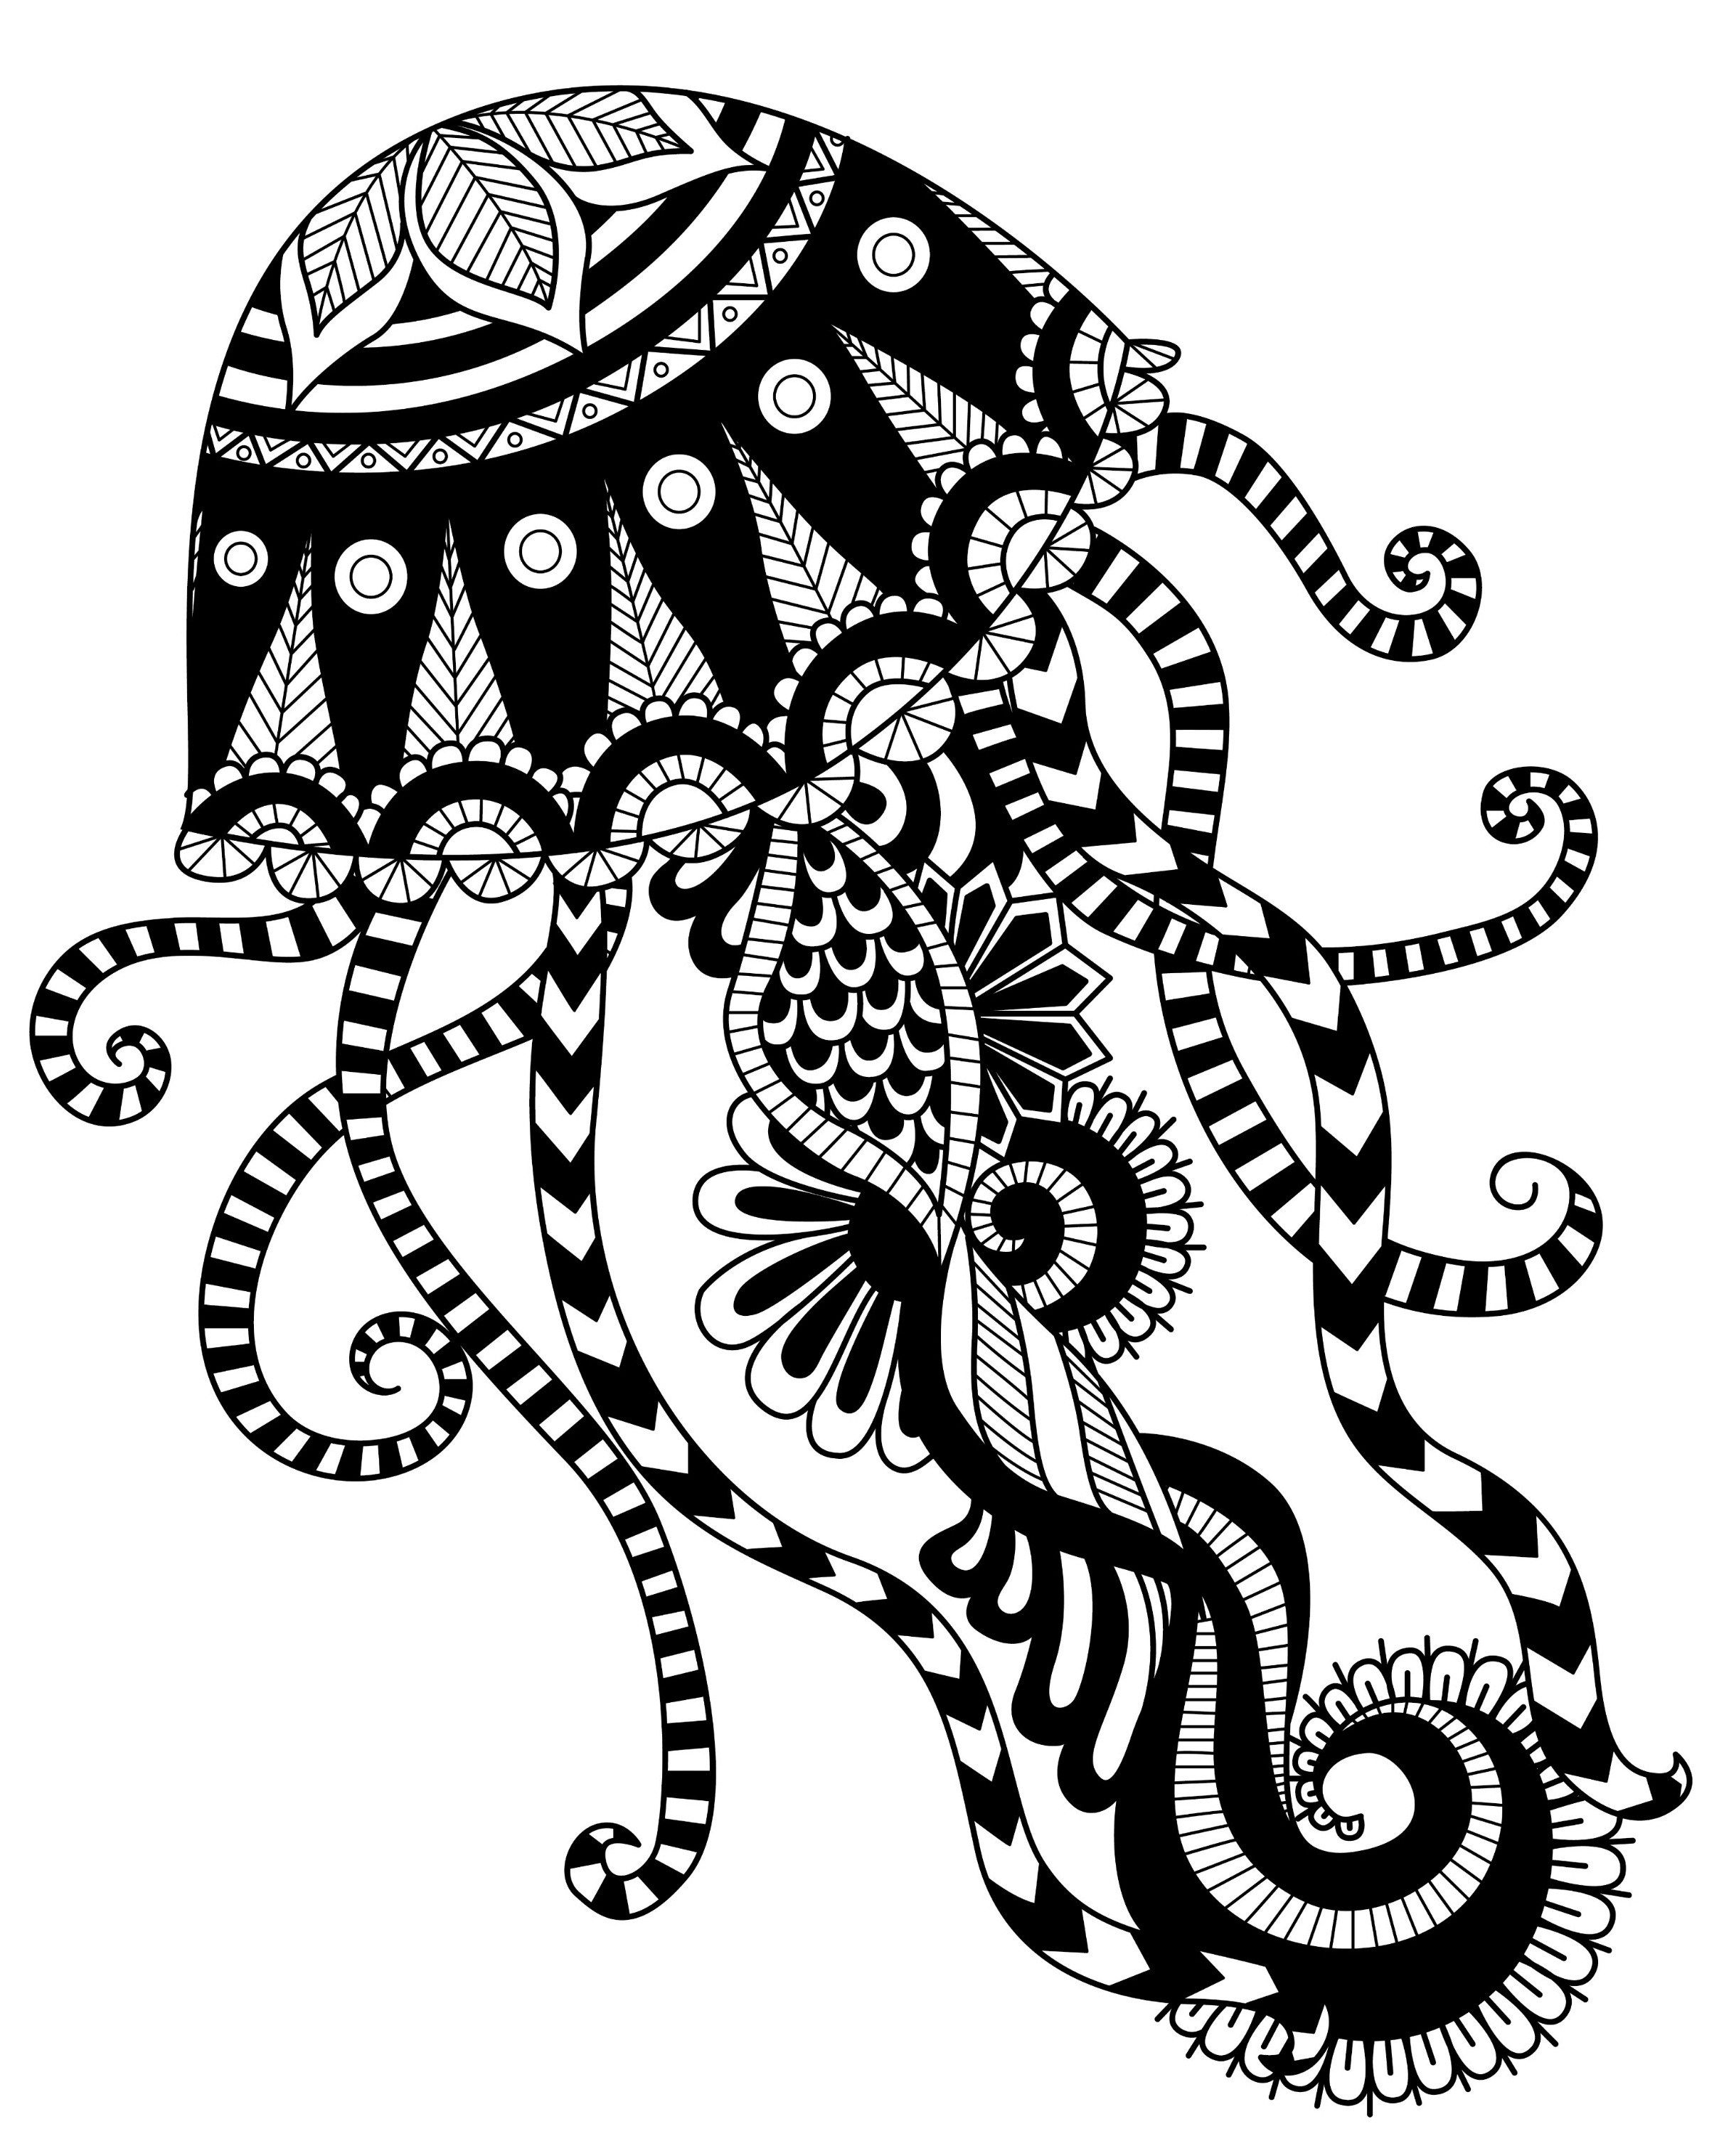 Jellyfish Animal Coloring Pages. jellyfish mandala coloring page  Art Coloring Pages Designs